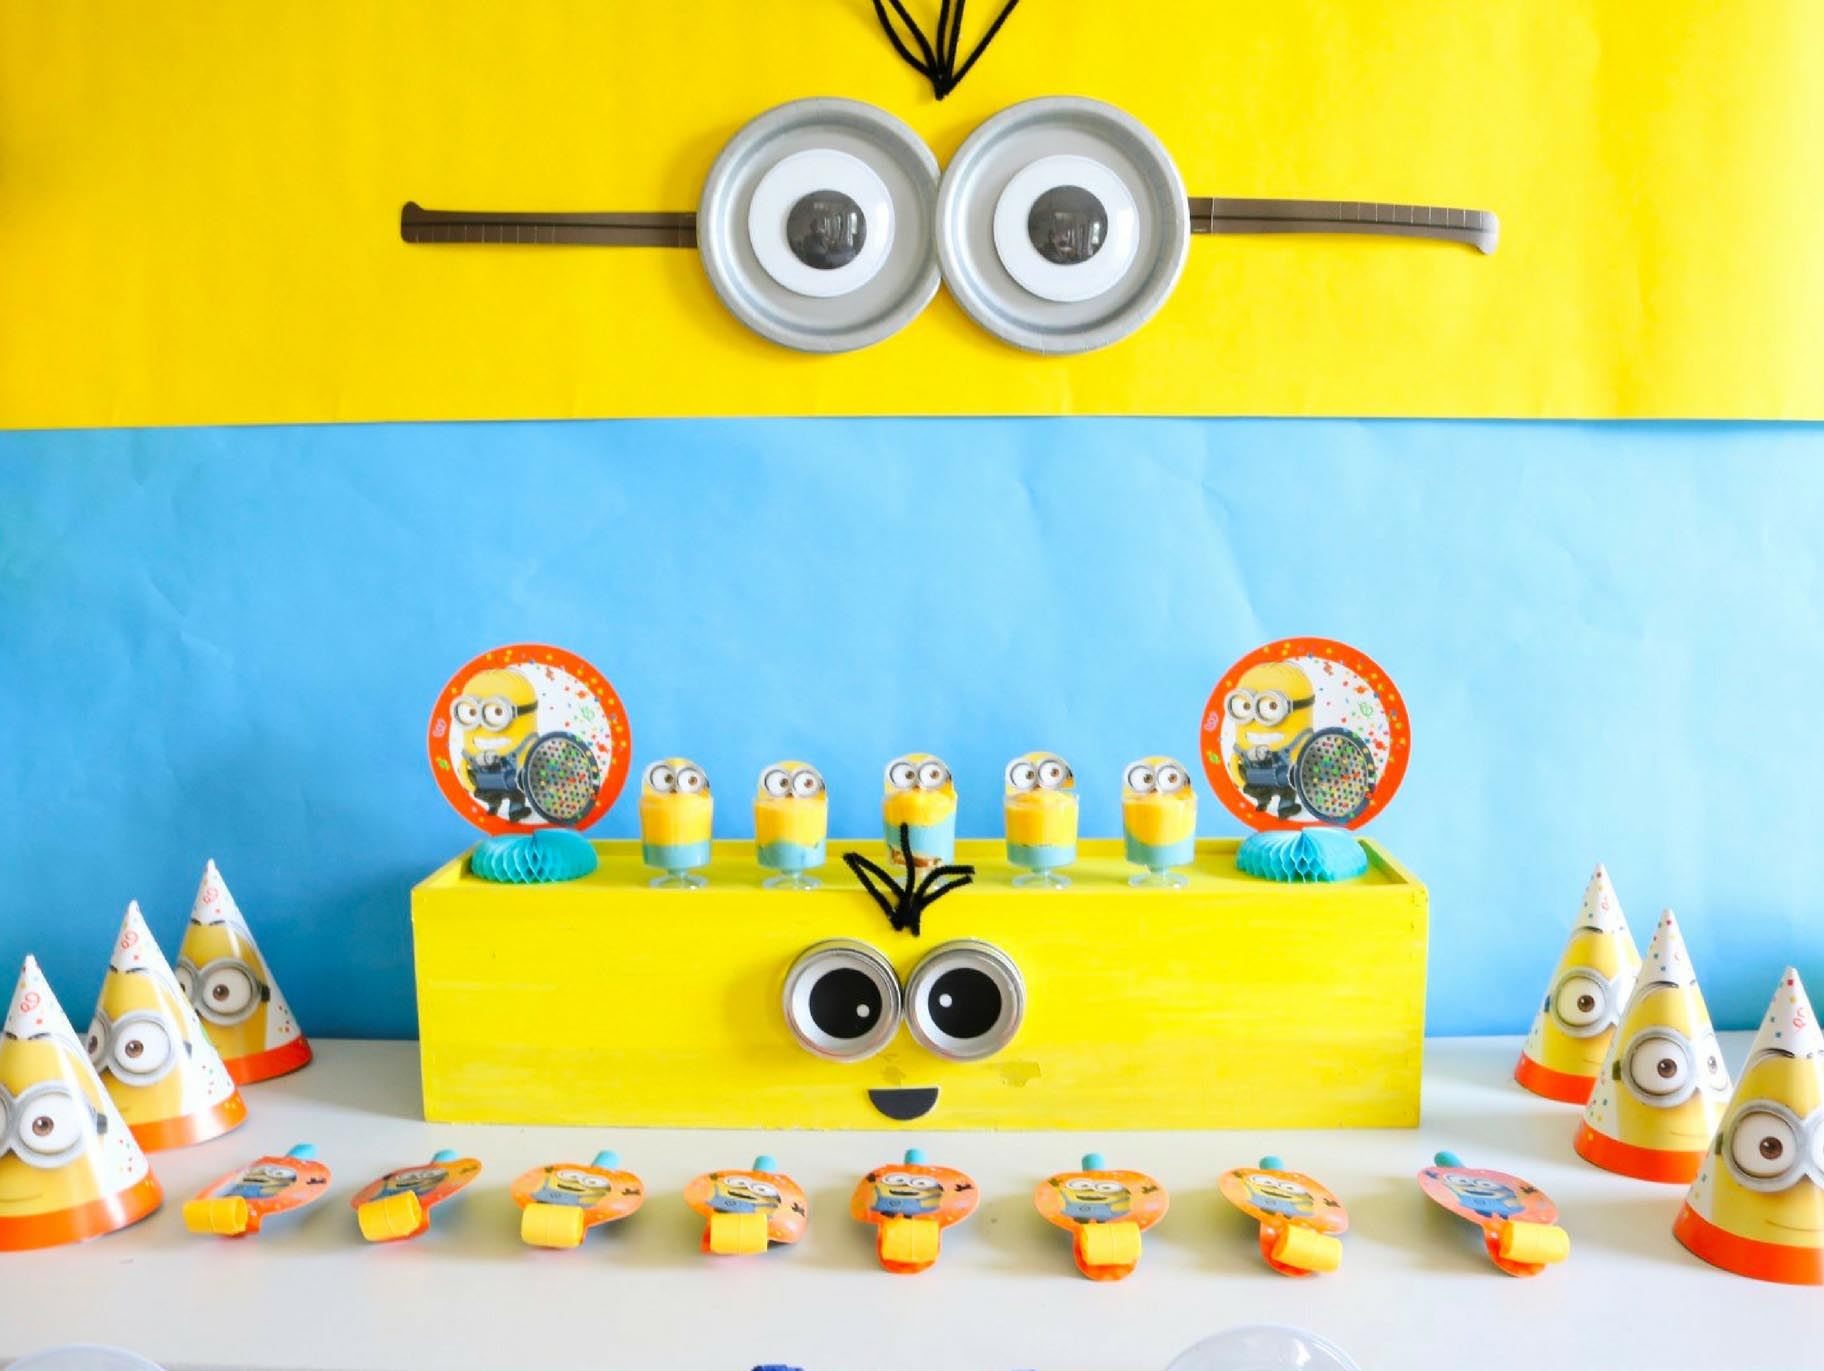 Swell Diy Minion Backdrop And Dessert Table Fun365 Personalised Birthday Cards Paralily Jamesorg